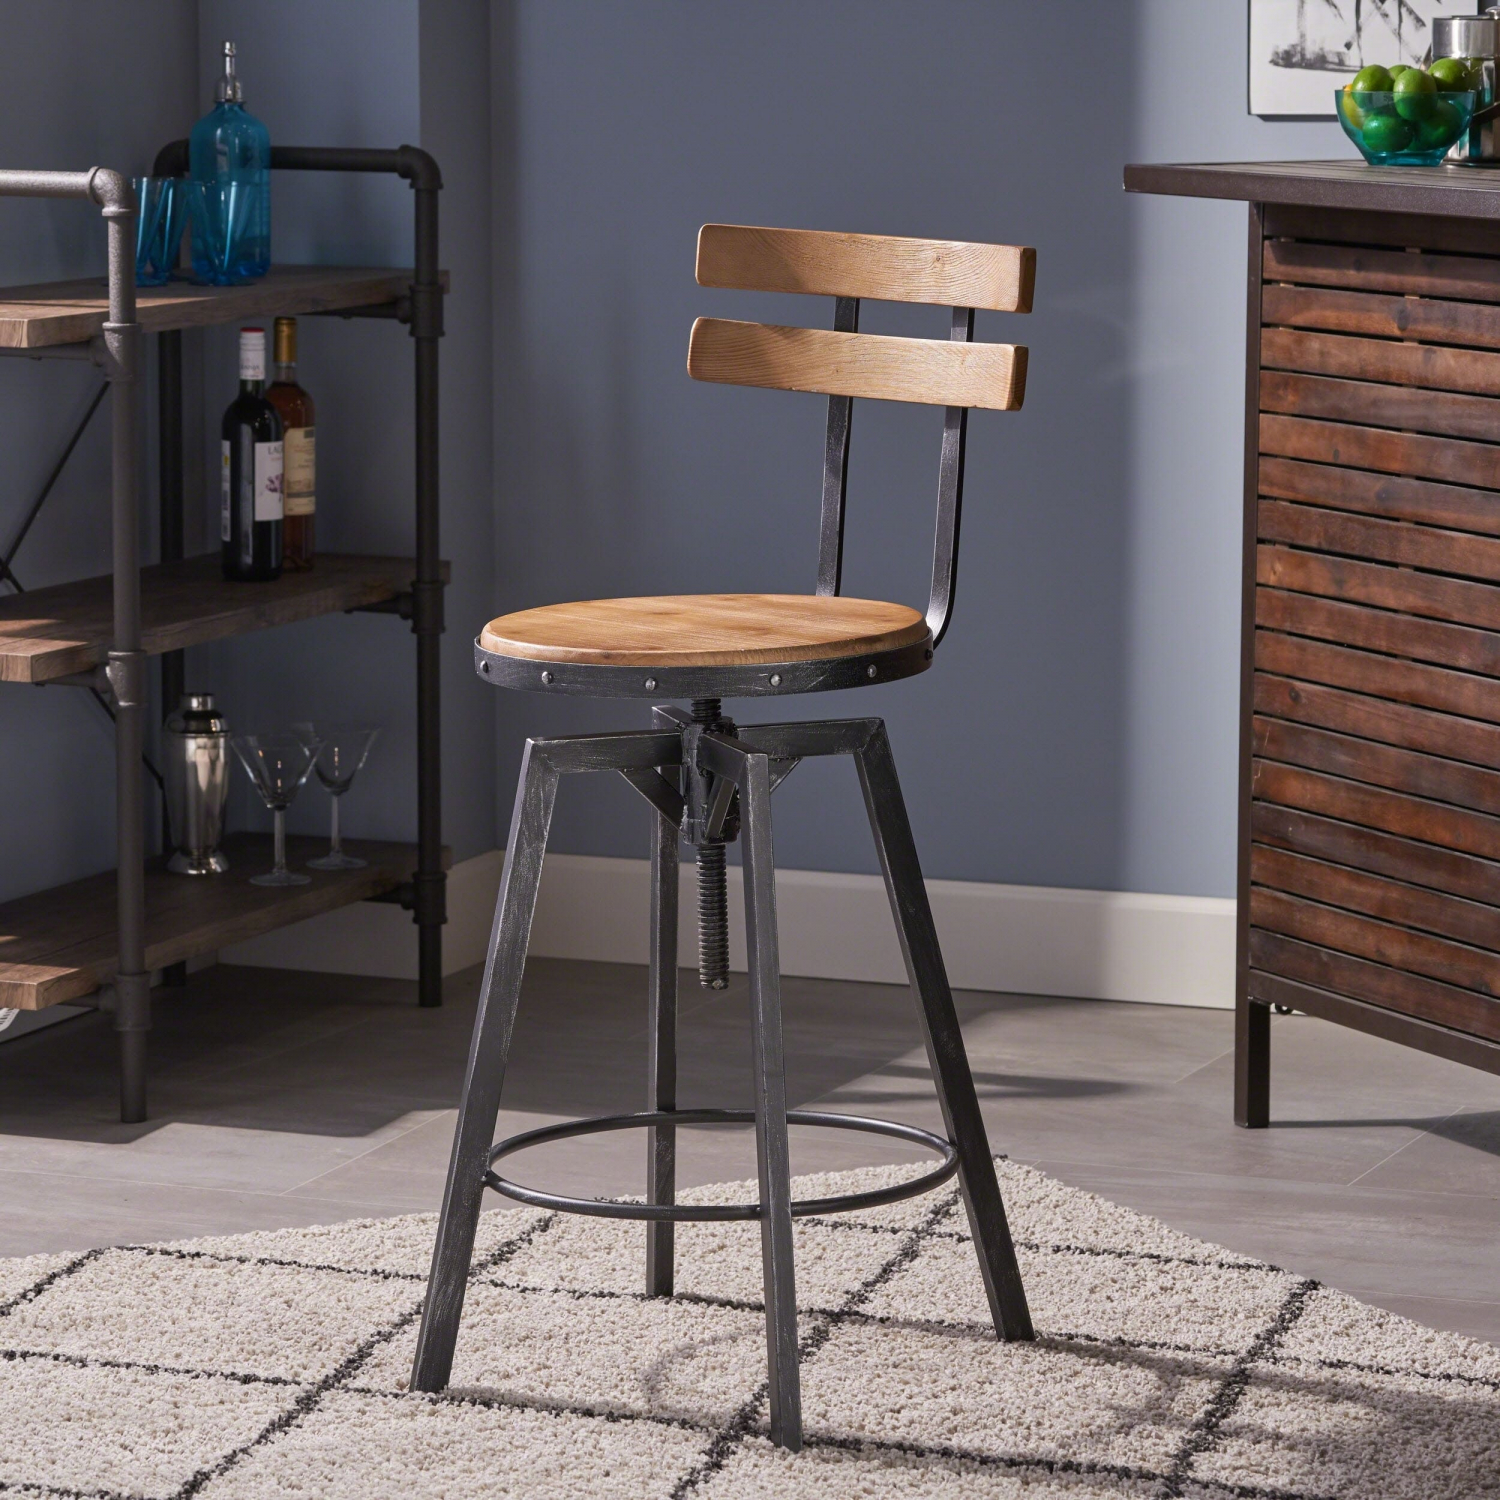 Get Inspired For Kitchen Bar Stools With Back Wallpaper Decor And Ideas